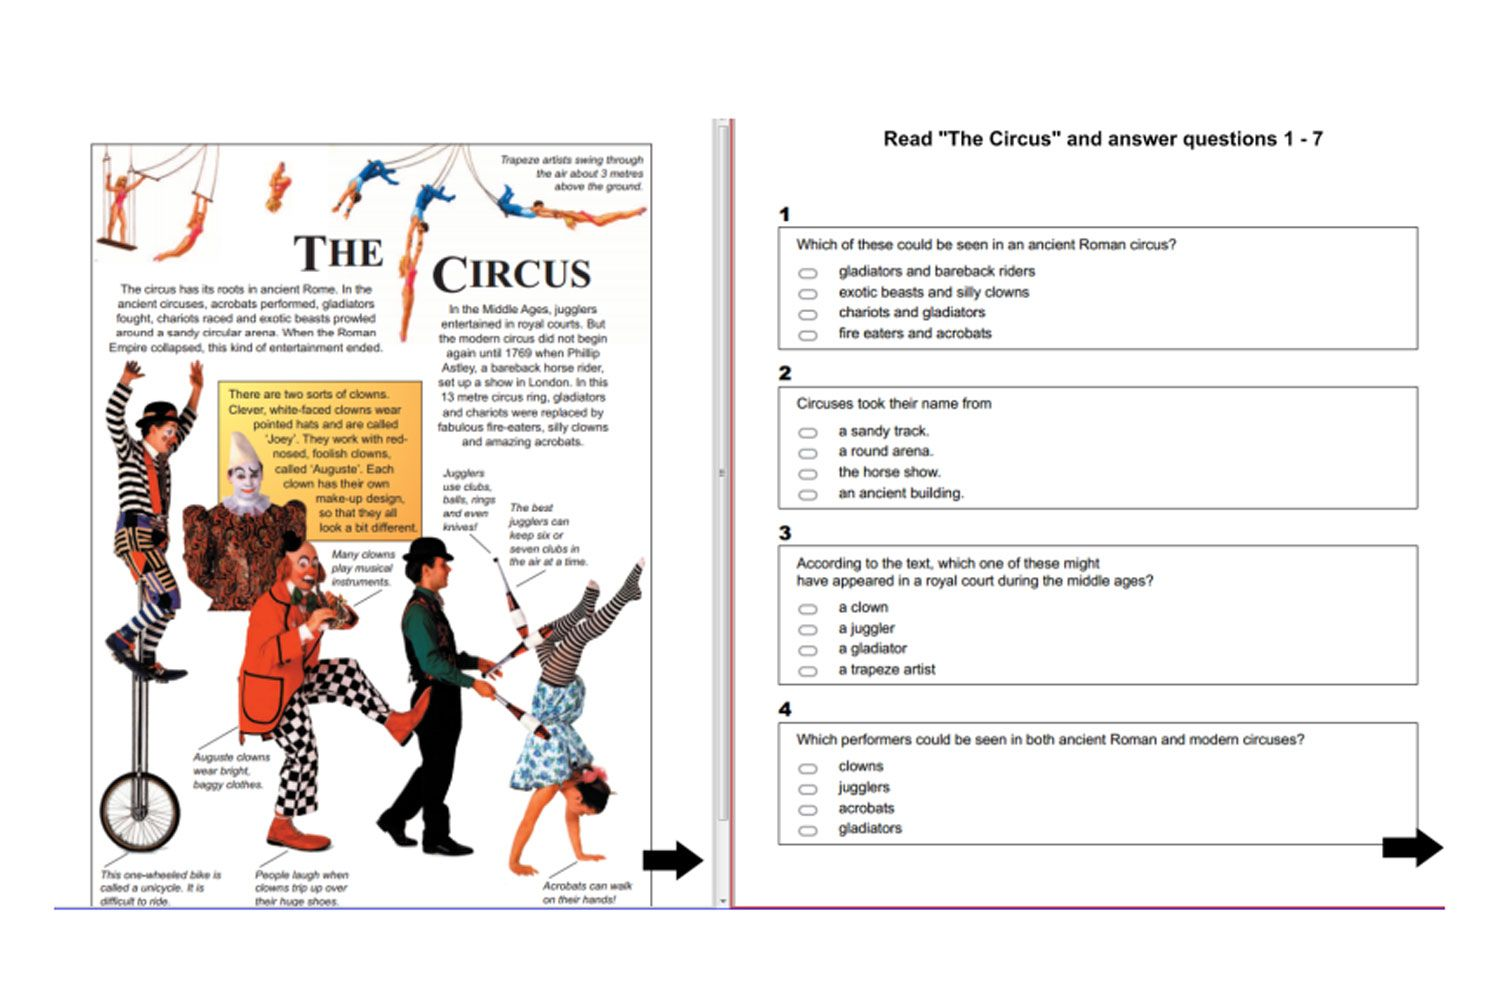 Year 5 Napaln Reading Practice Questions For Iwb